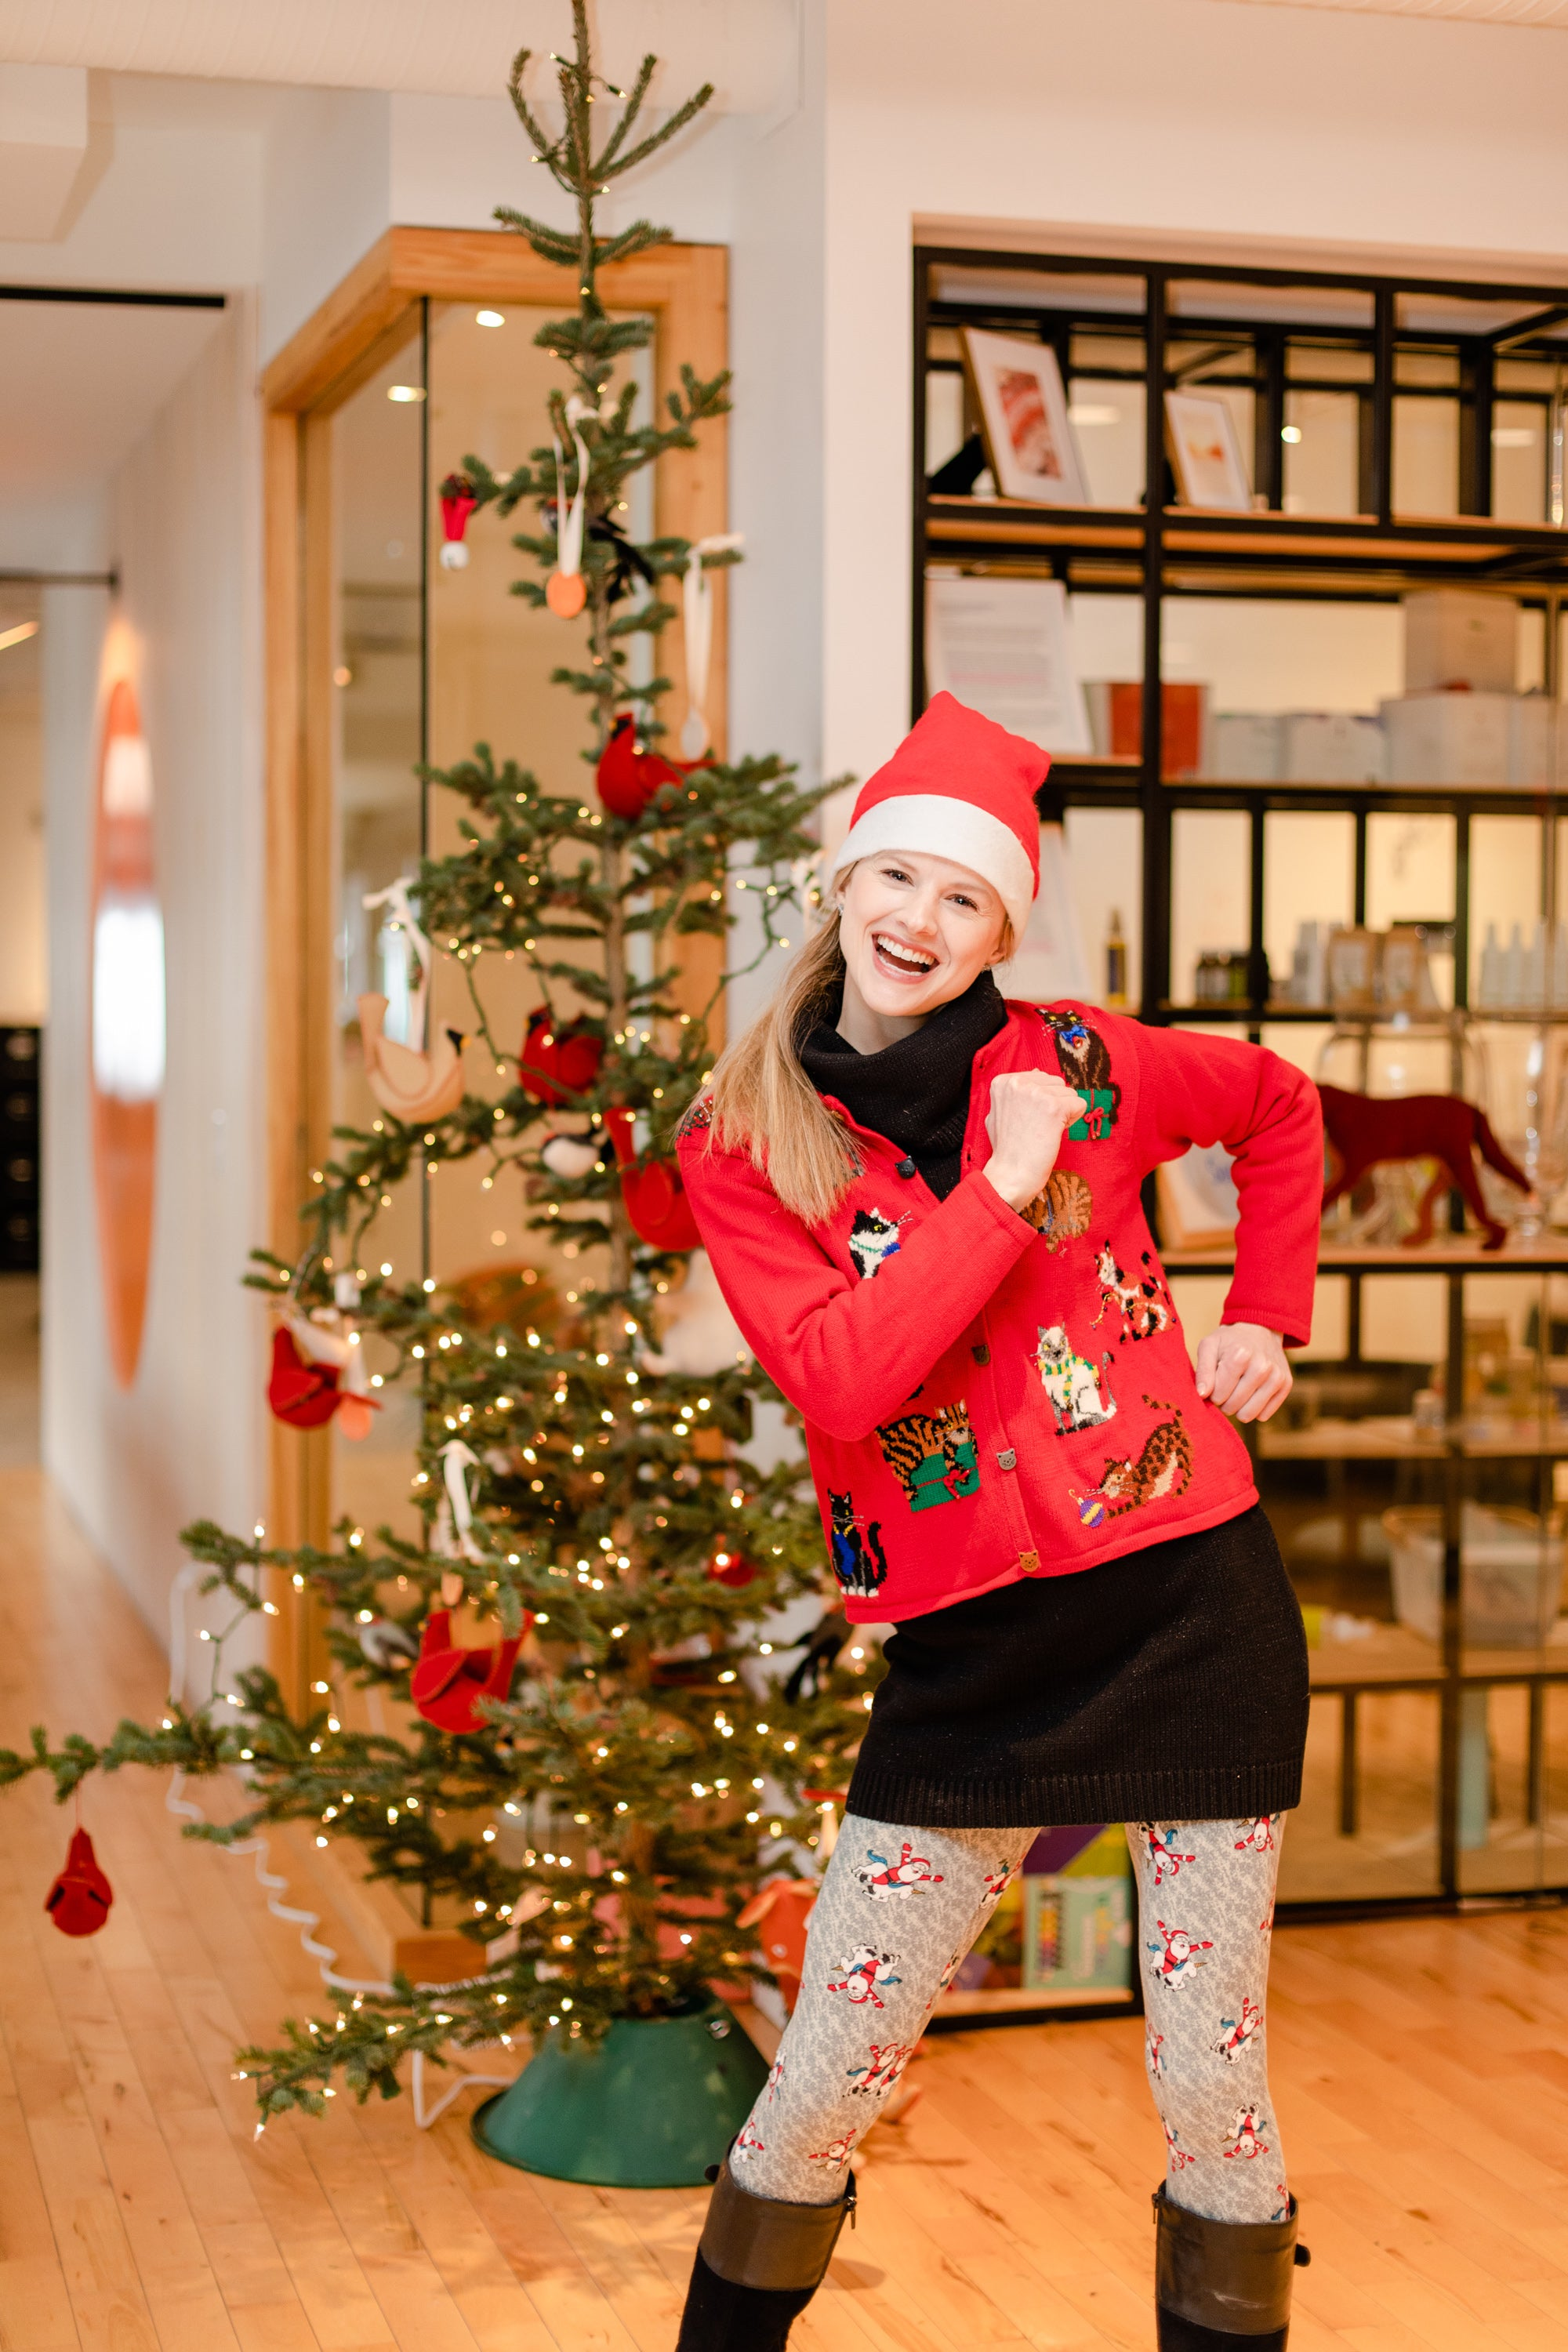 Sarah stands in front of the Rocky Mountain Soap Company holiday tree in a holiday sweater and Santa-themed nylons.